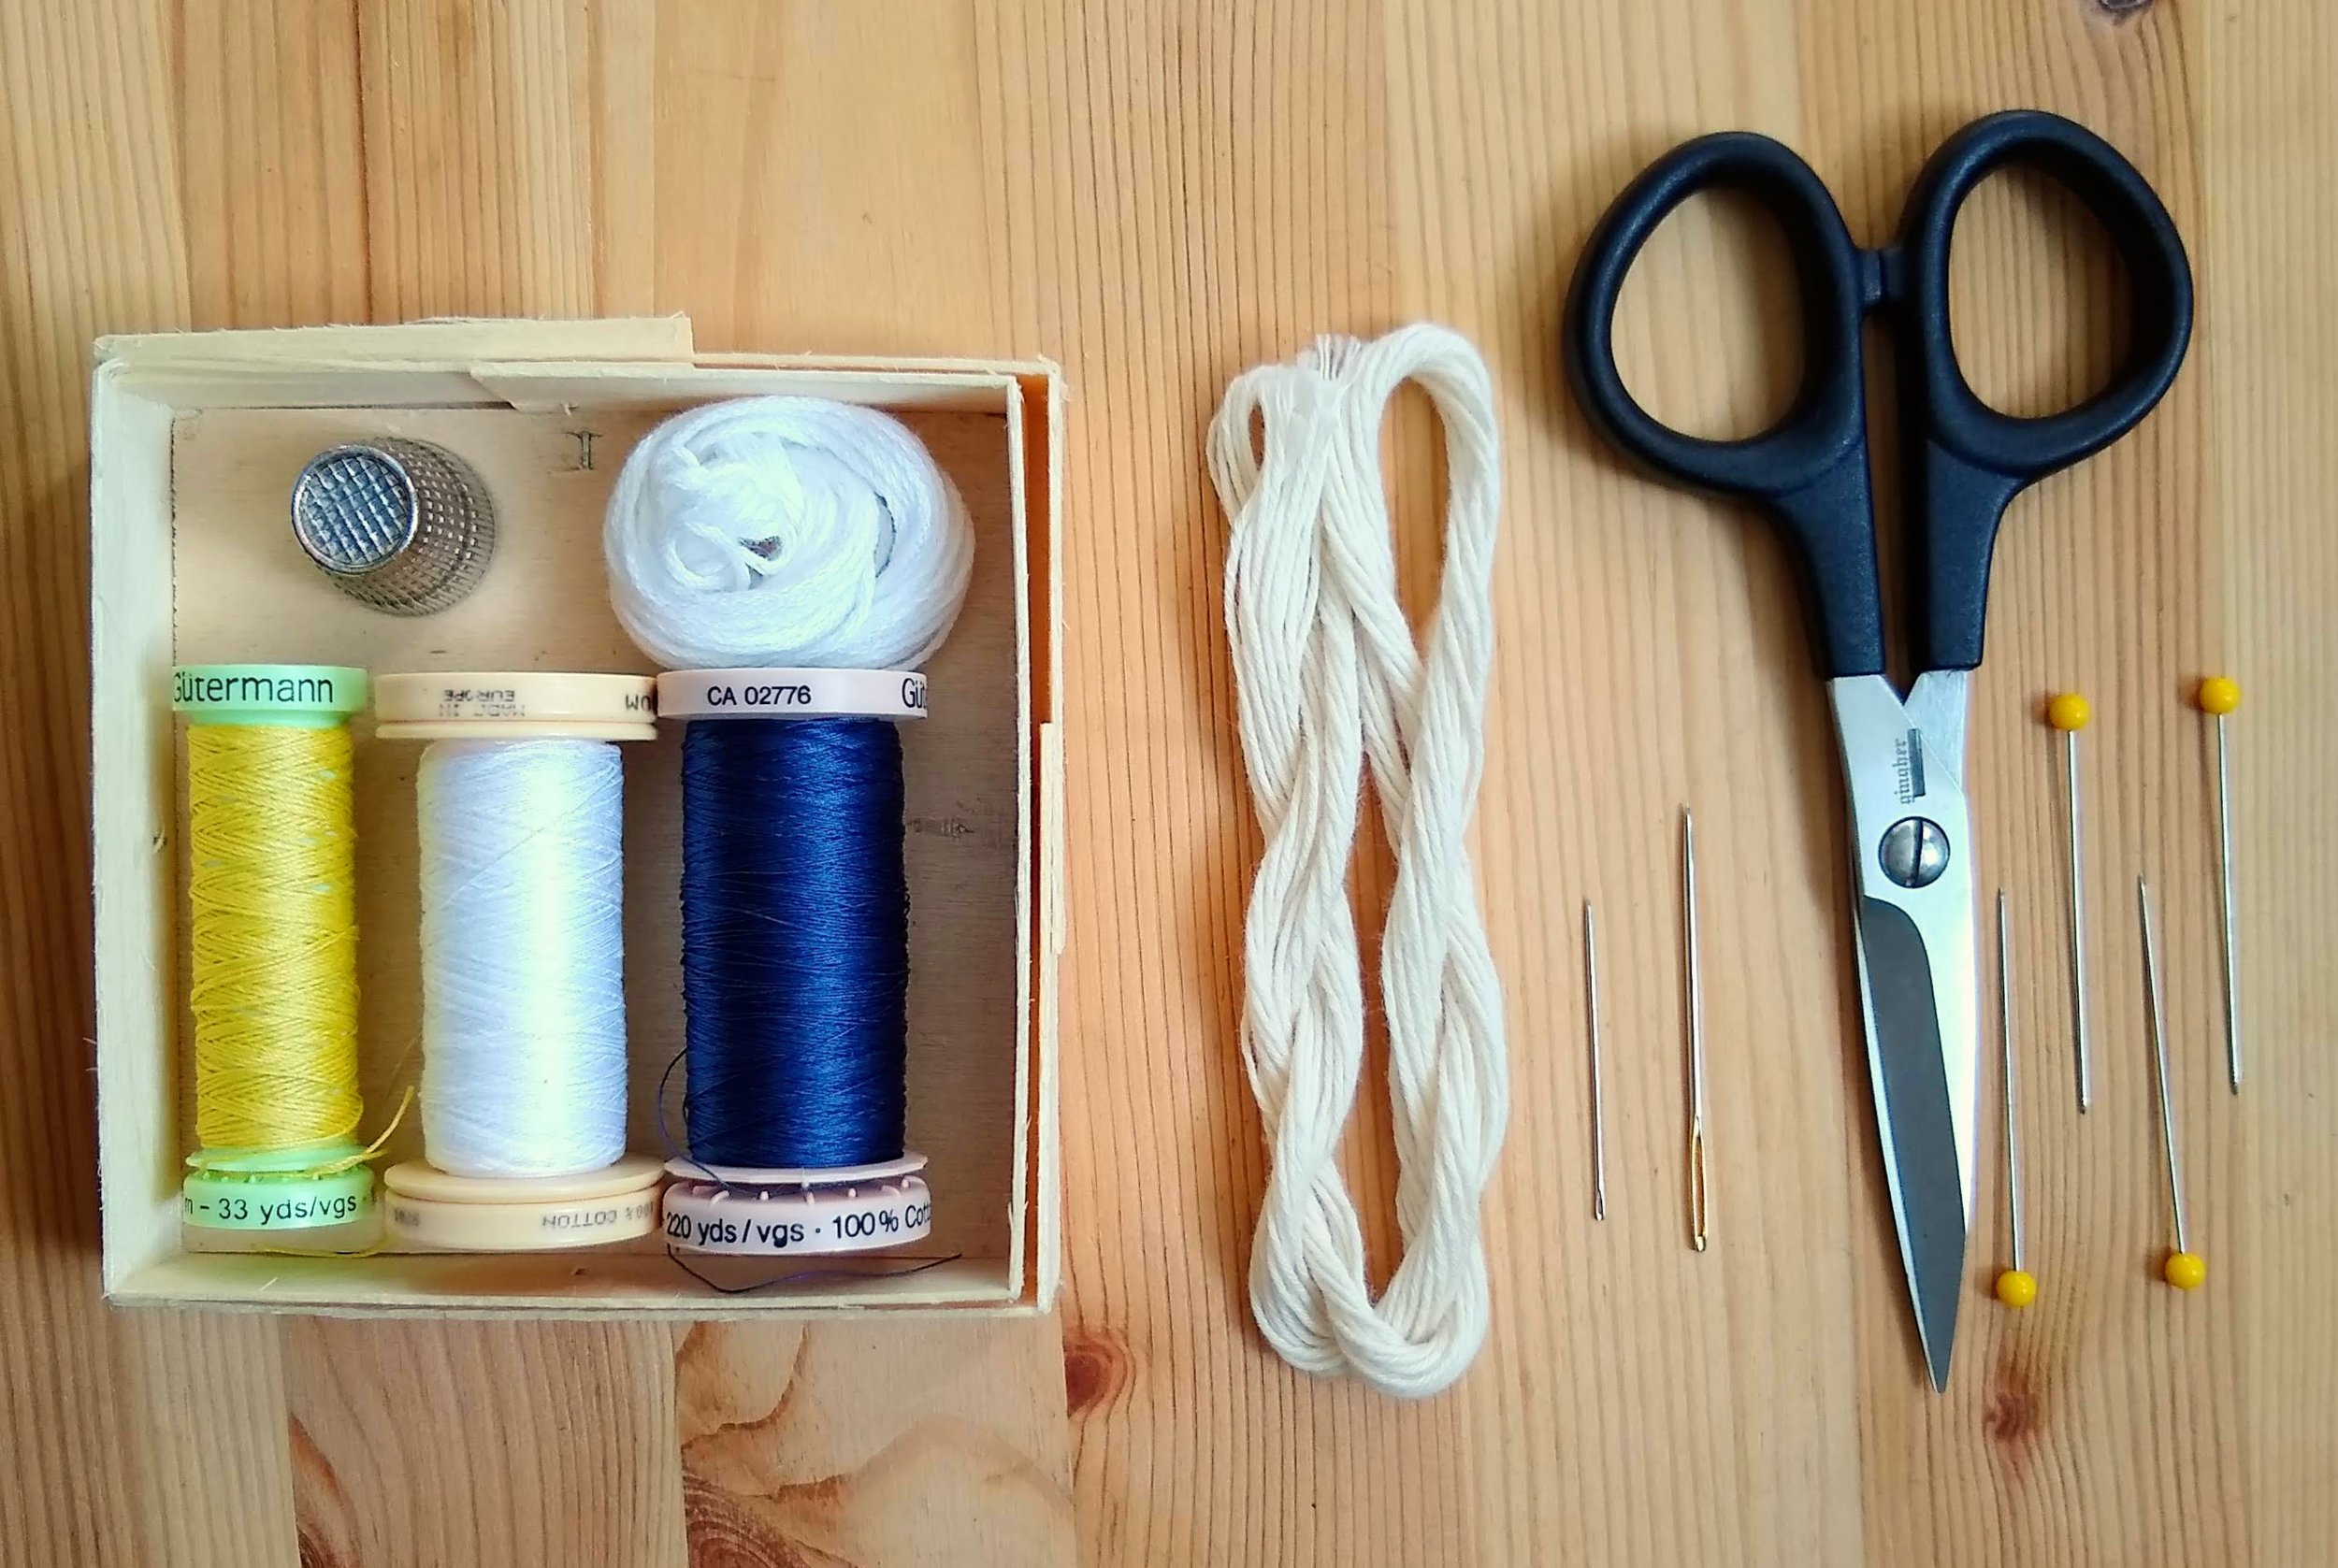 Mending haberdashery: Sewing thread (in colors to match patches and denim, standard thimble, embroidery floss or Japanese sashiko thread, a heavy duty sashiko or embroidery needle, a standard hand sewing needle, and sharp, pointy scissors.